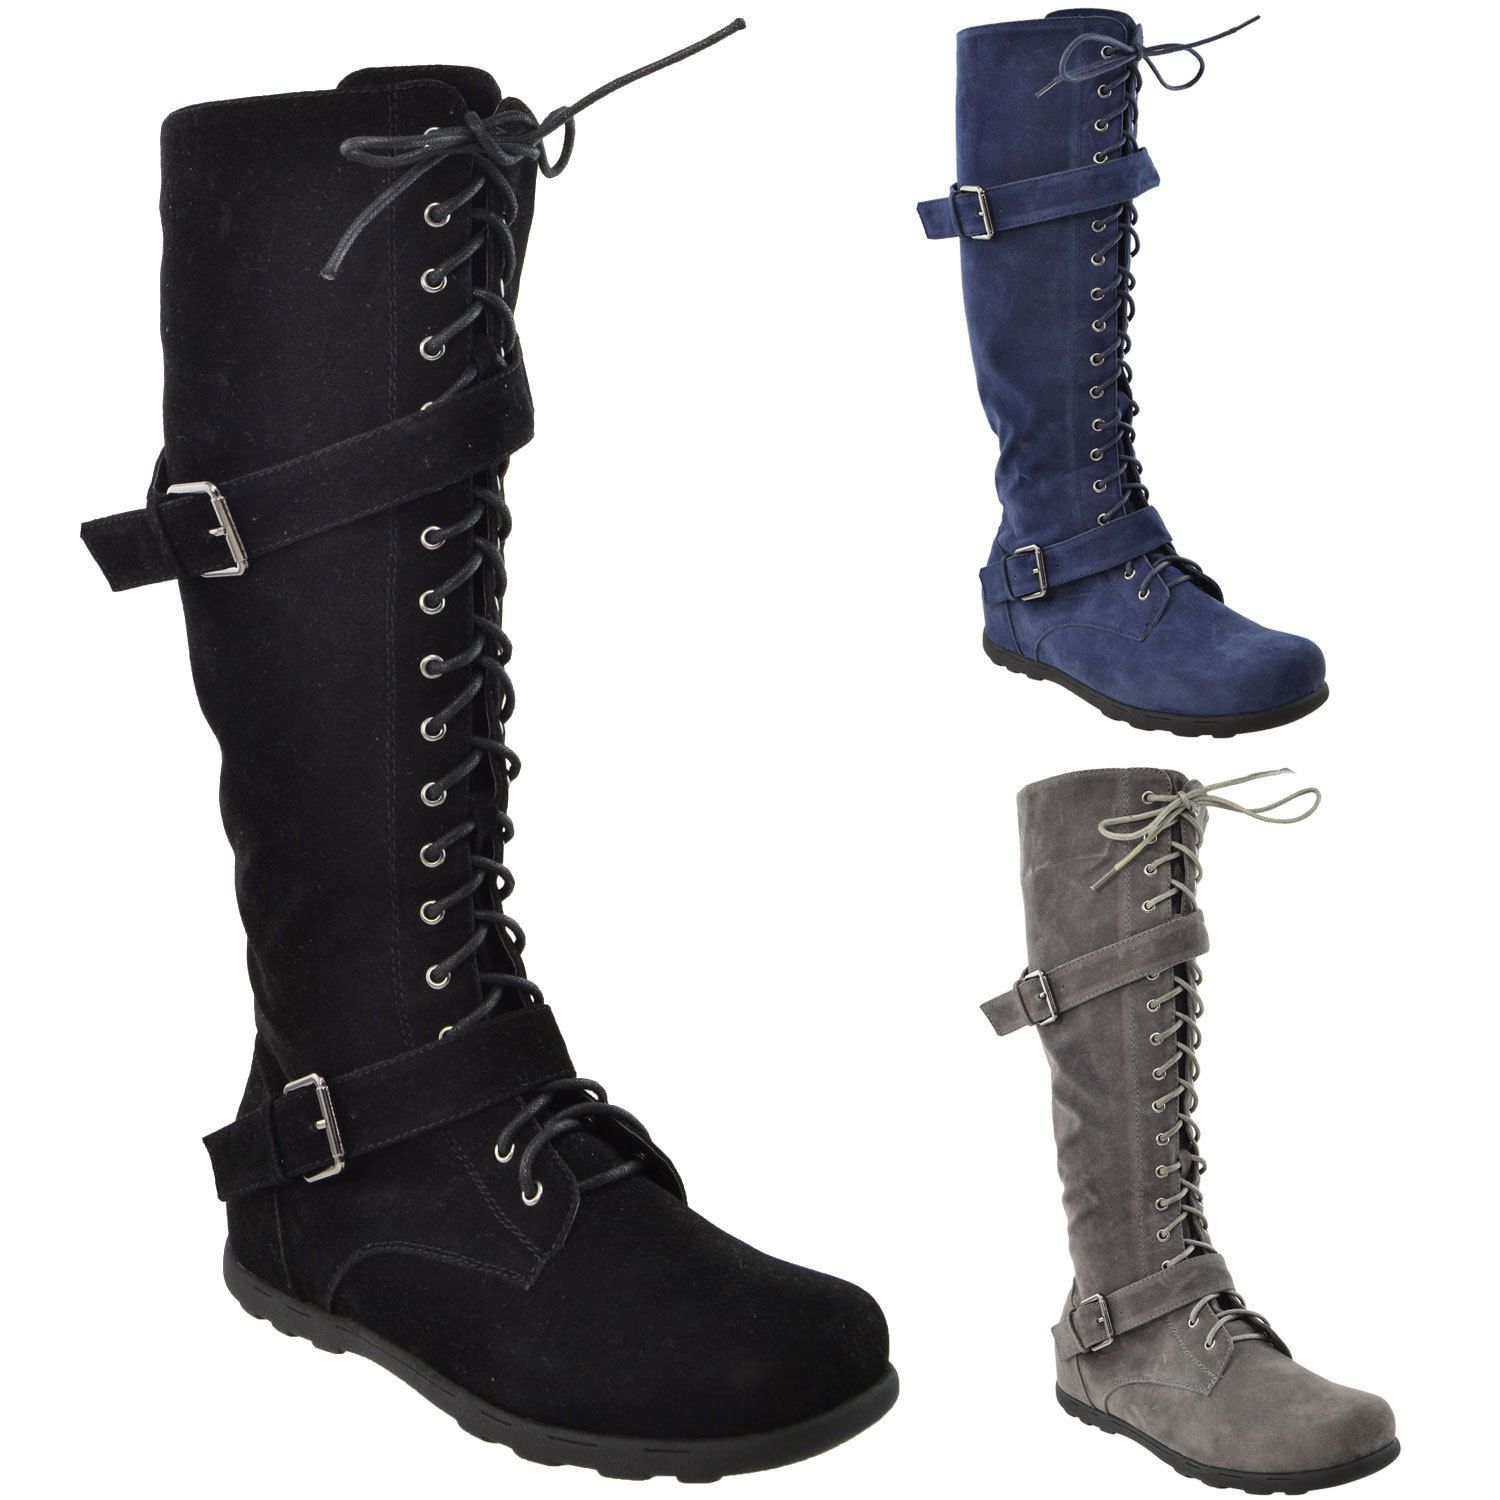 bba50d9a7c8 Womens Flat Knee High Boots Lace Up Suede Buckles Comfort Winter Lady S  Shoes